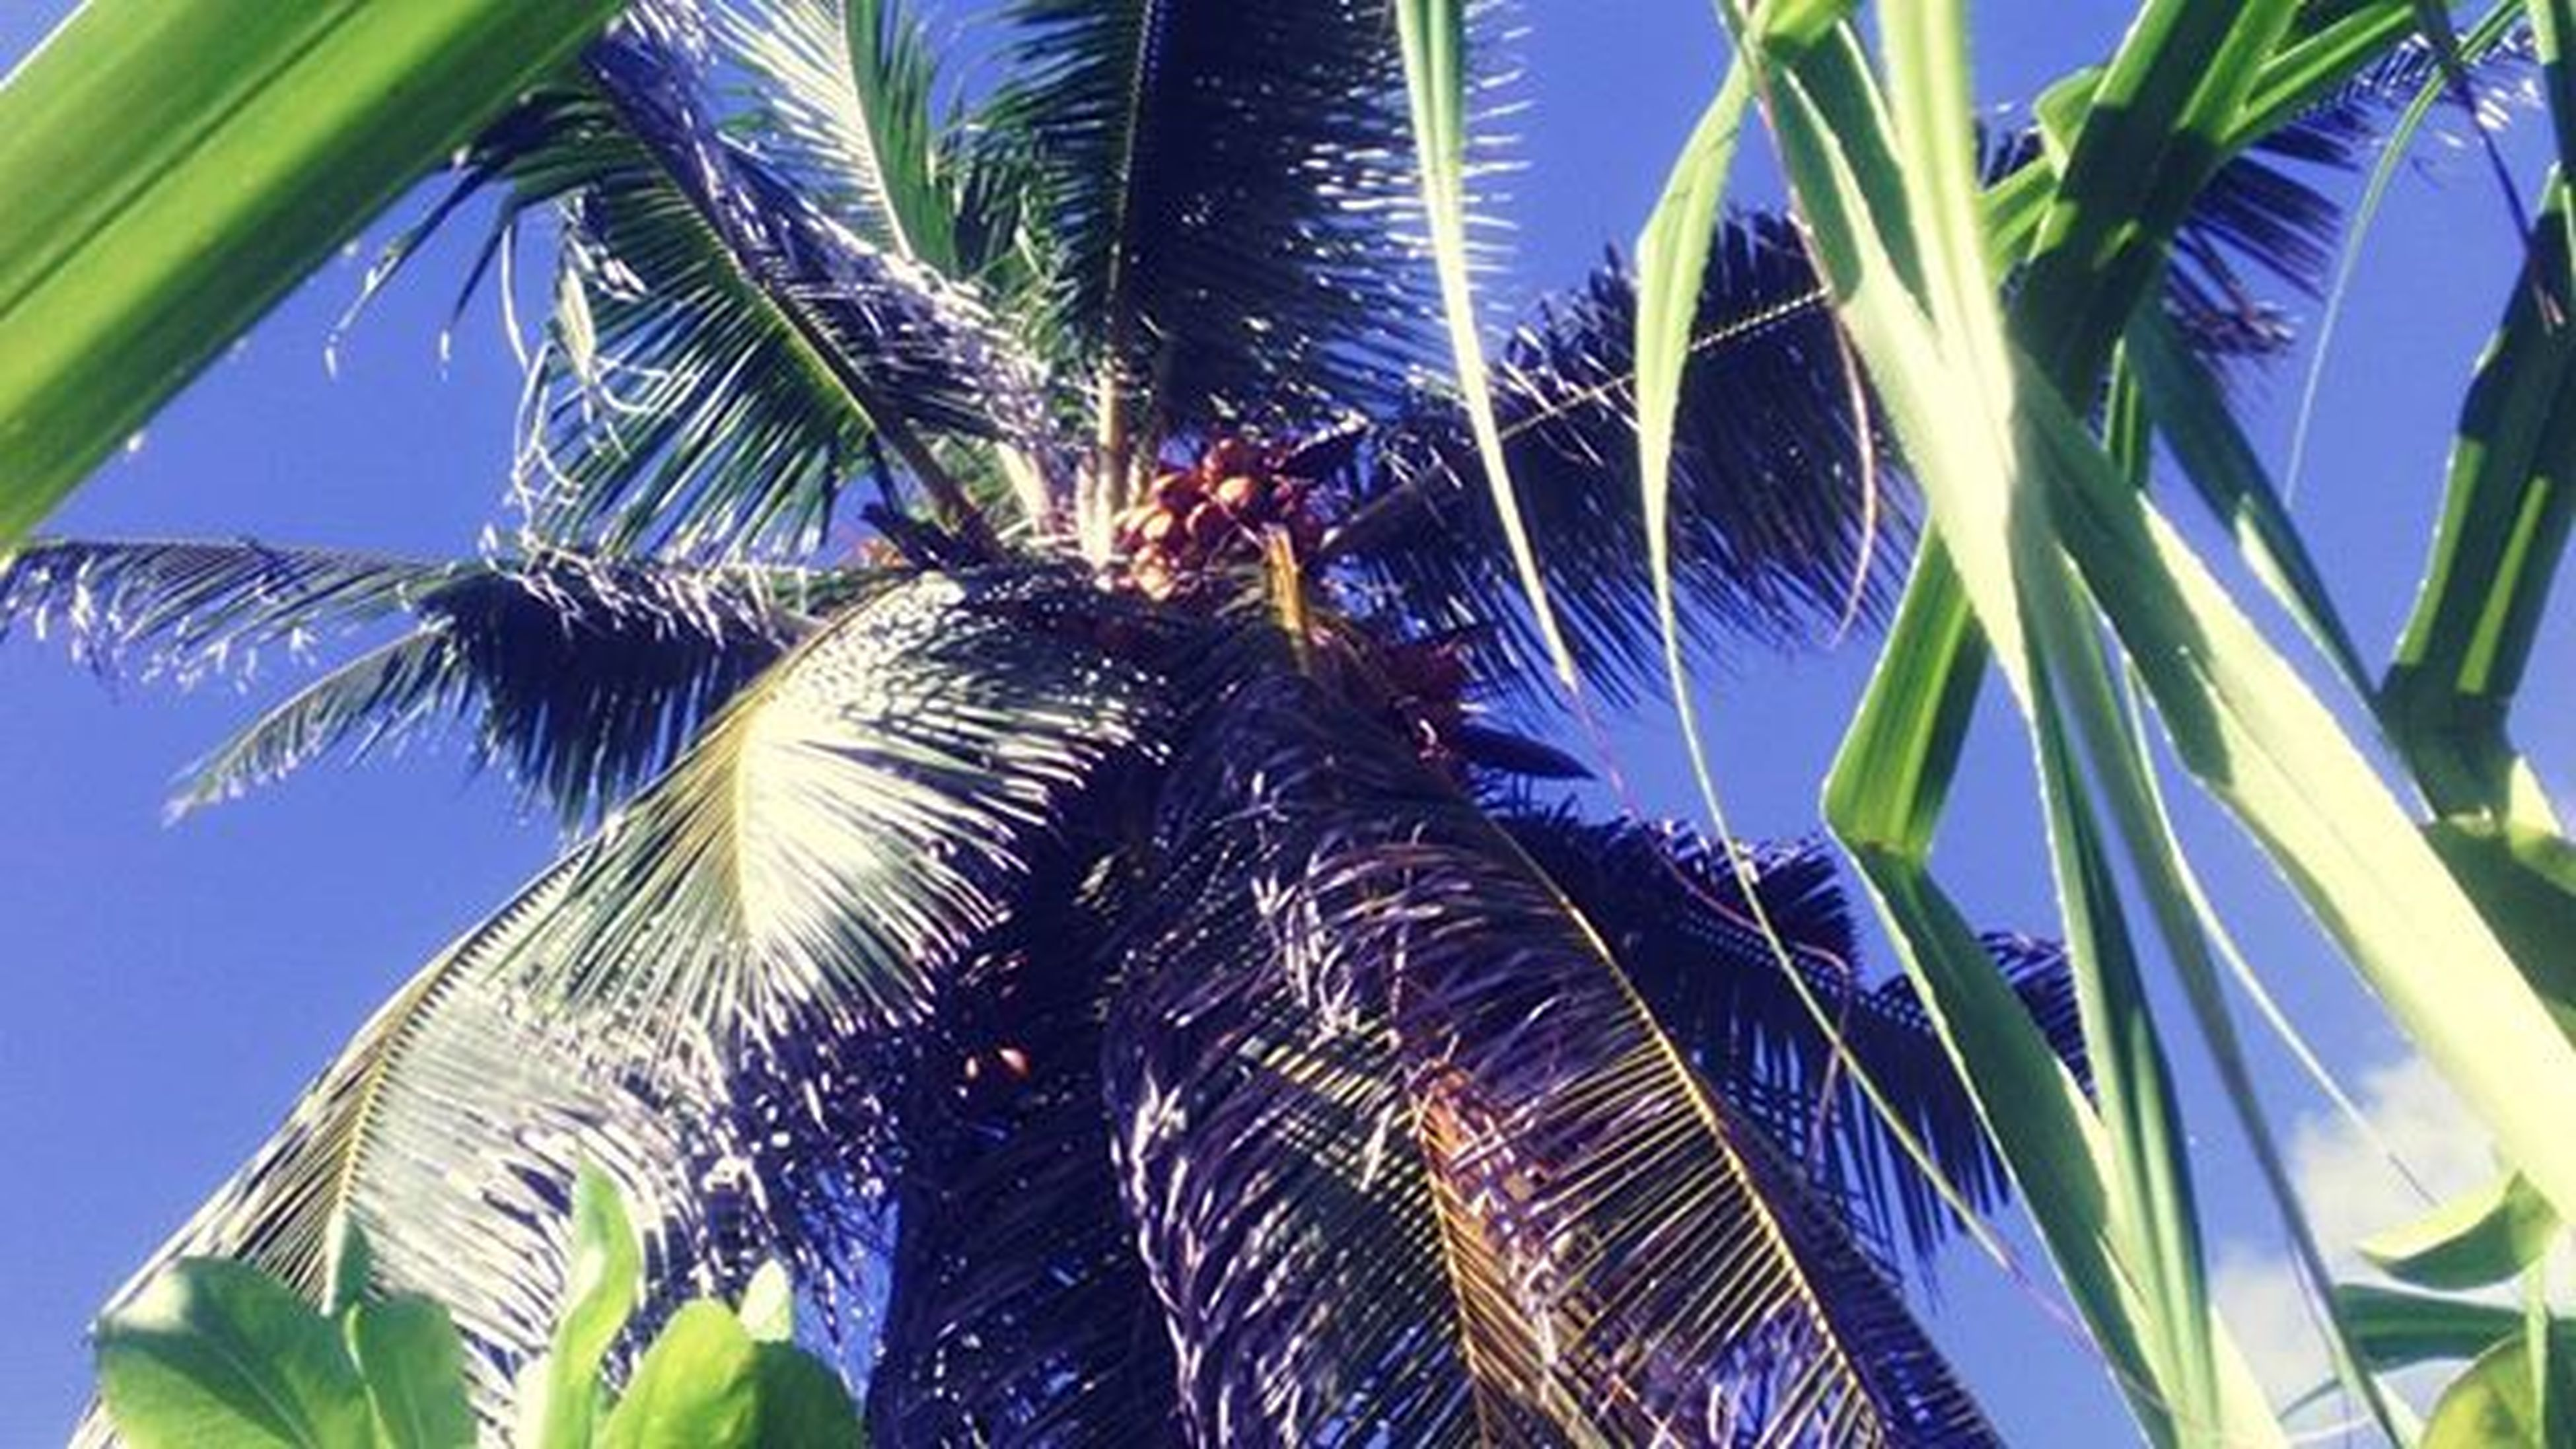 palm tree, low angle view, growth, palm leaf, leaf, tree, nature, clear sky, blue, tropical tree, green color, sky, coconut palm tree, branch, day, outdoors, palm frond, beauty in nature, tall - high, tropical climate